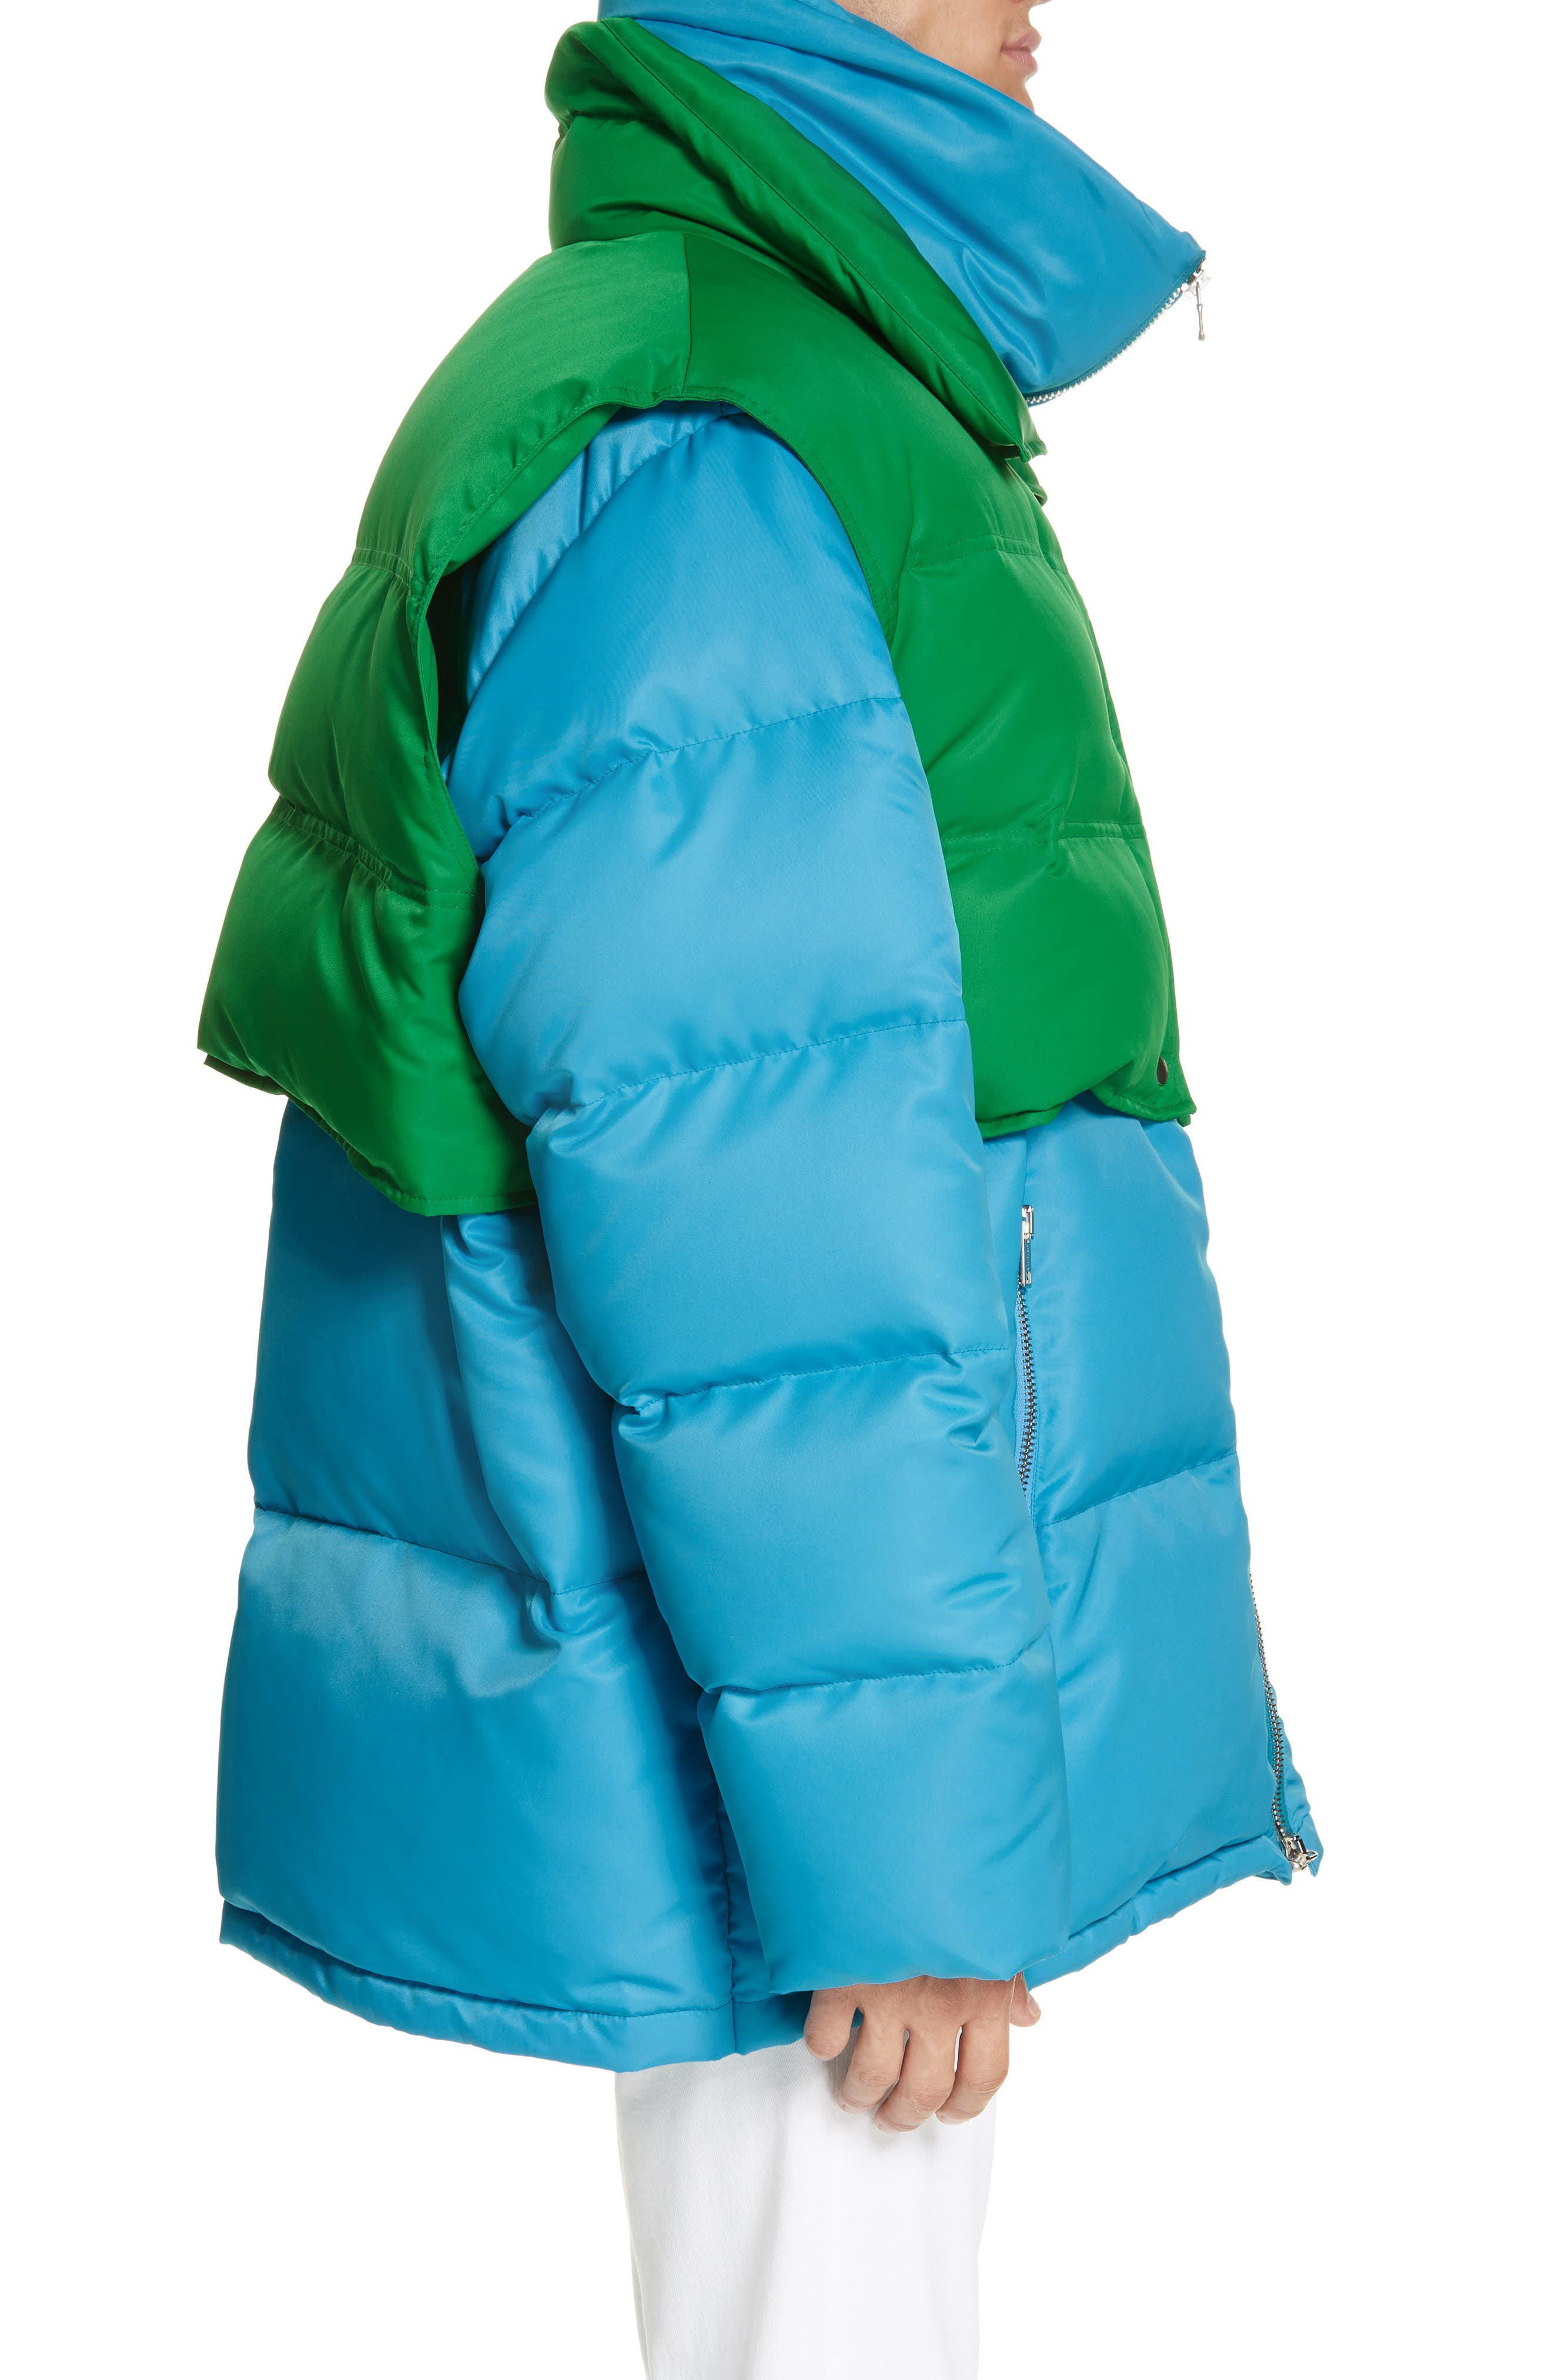 CALVIN KLEIN 205W39NYC, Water Repellent Quilted Puffer Jacket, Alternate thumbnail 3, color, RIVIERA BLUE SPRING GREEN